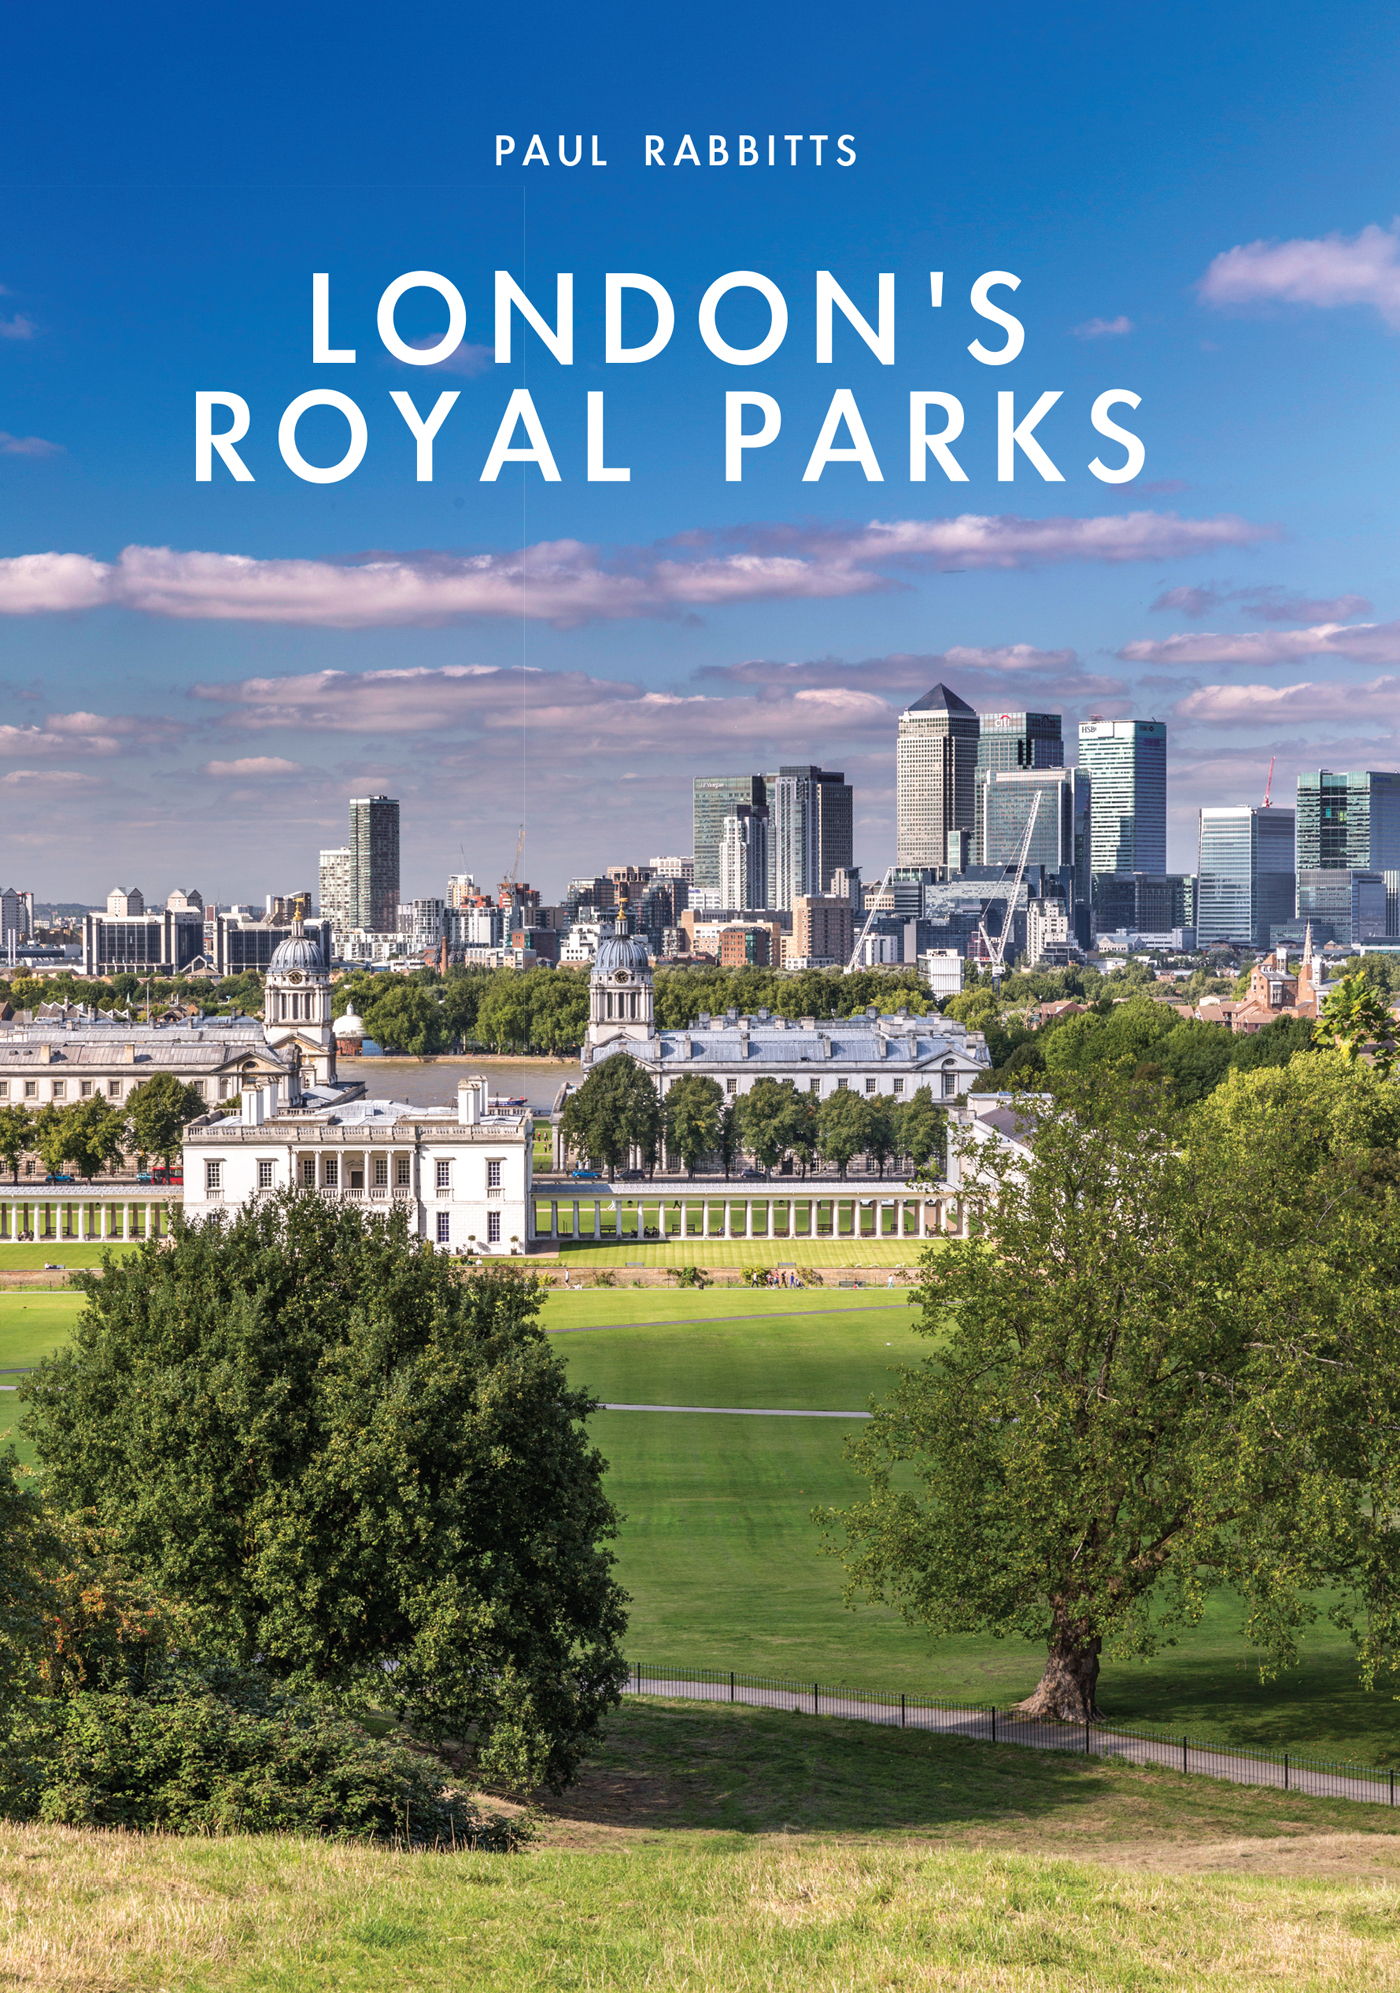 London's Royal Parks